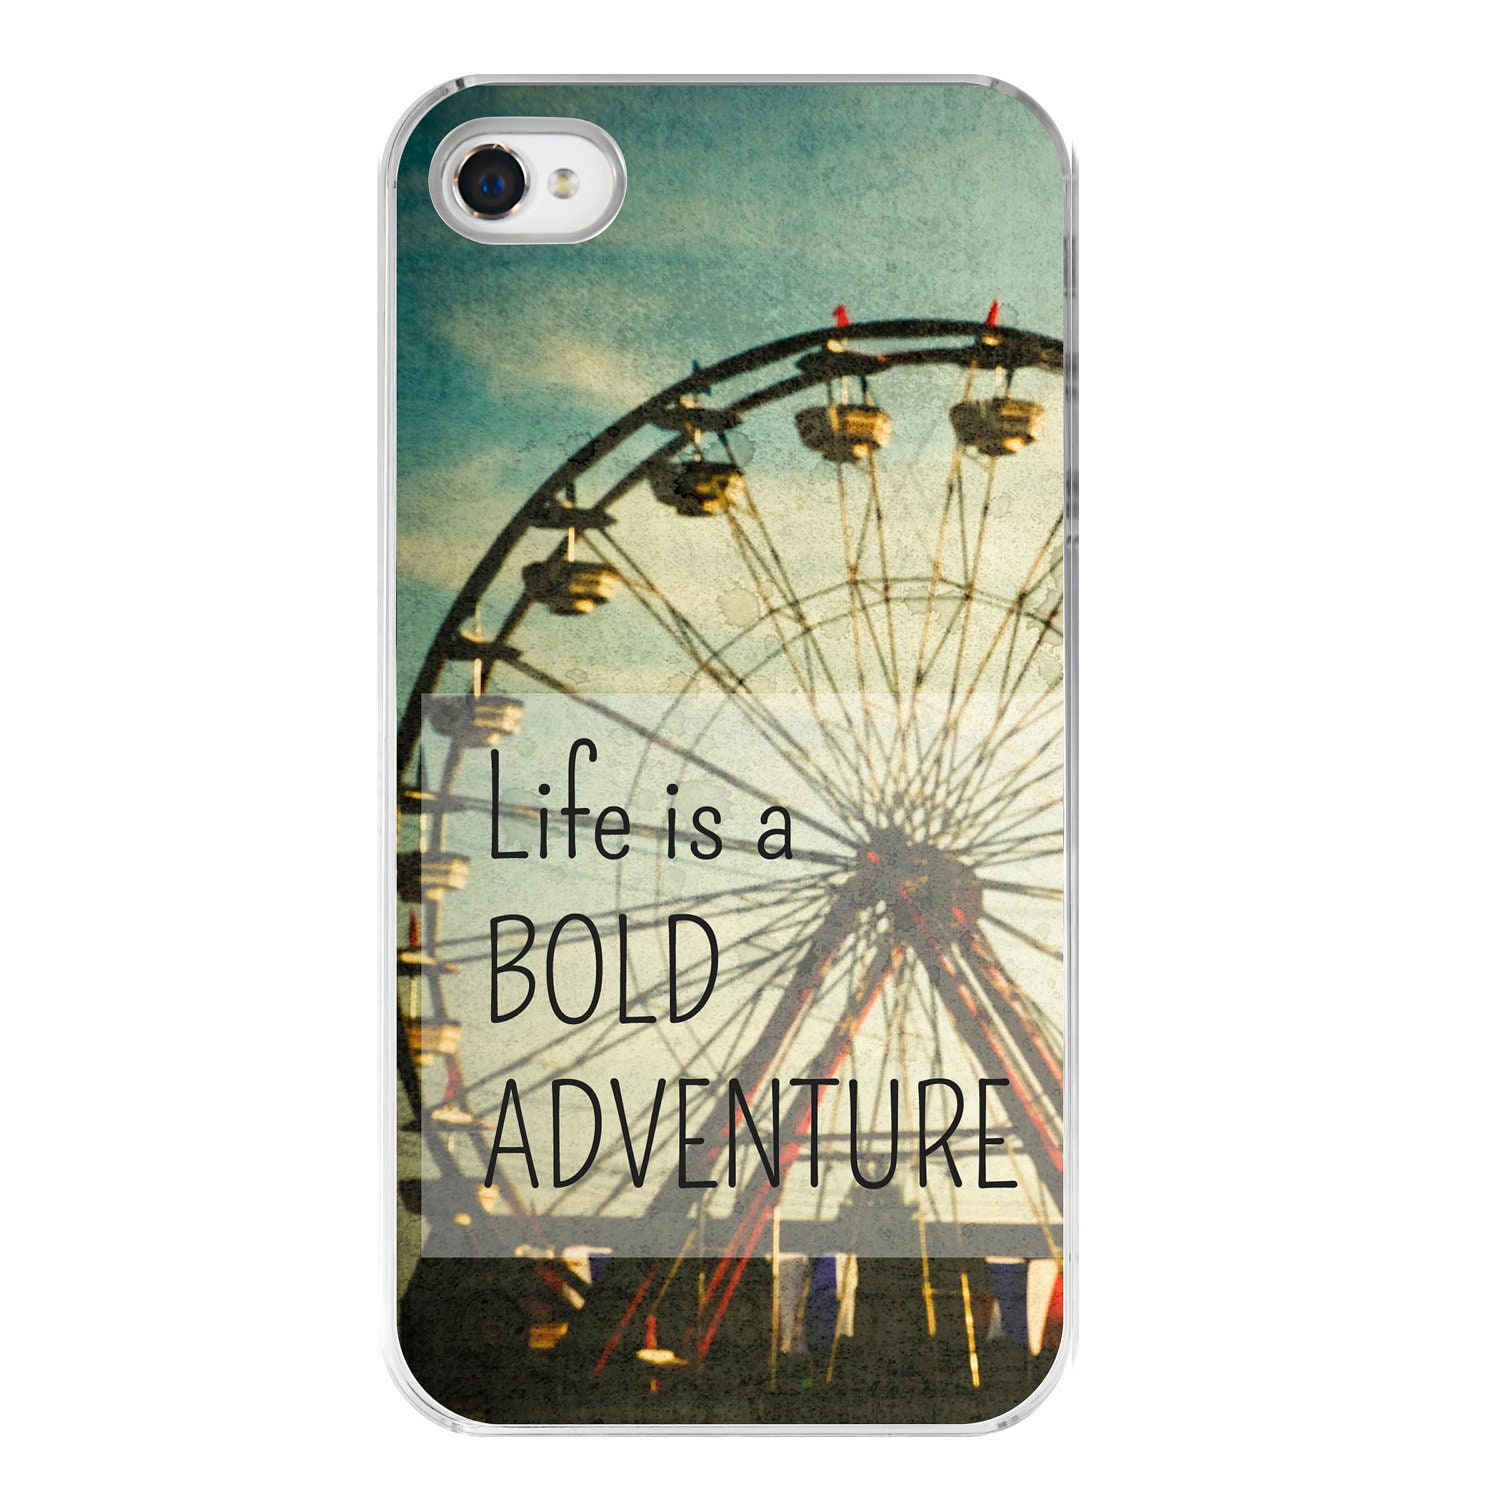 Case Design printed phone case : hipster iphone 4s cover . iPhone 4 case . steampunk . carnival